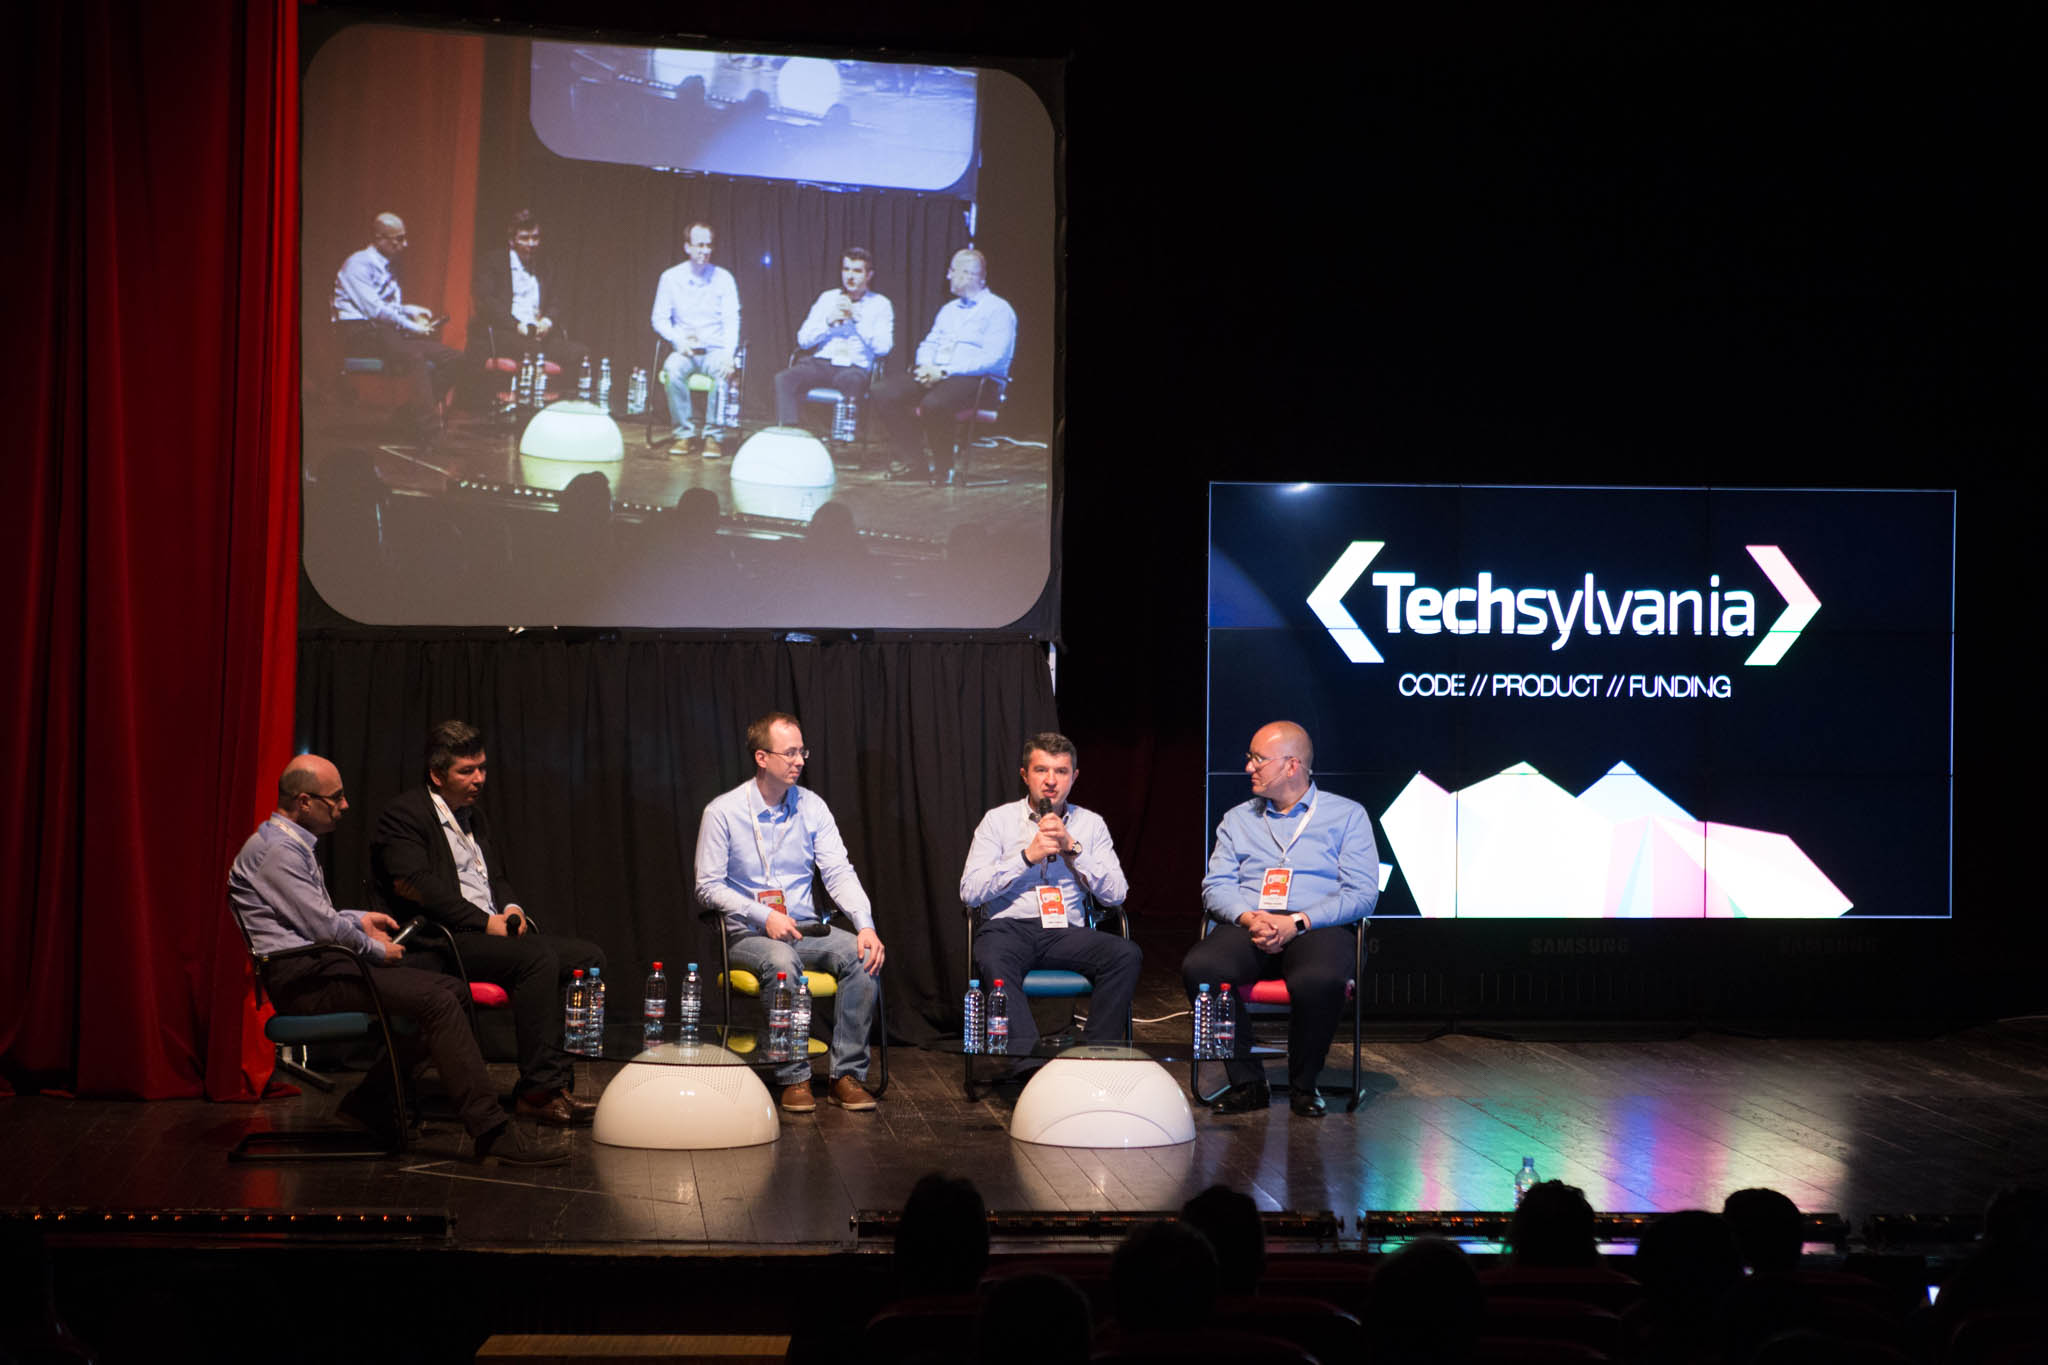 Fortech CEO at Techsylvania Cluj. Pannel talk on cluj tech ecosystem.